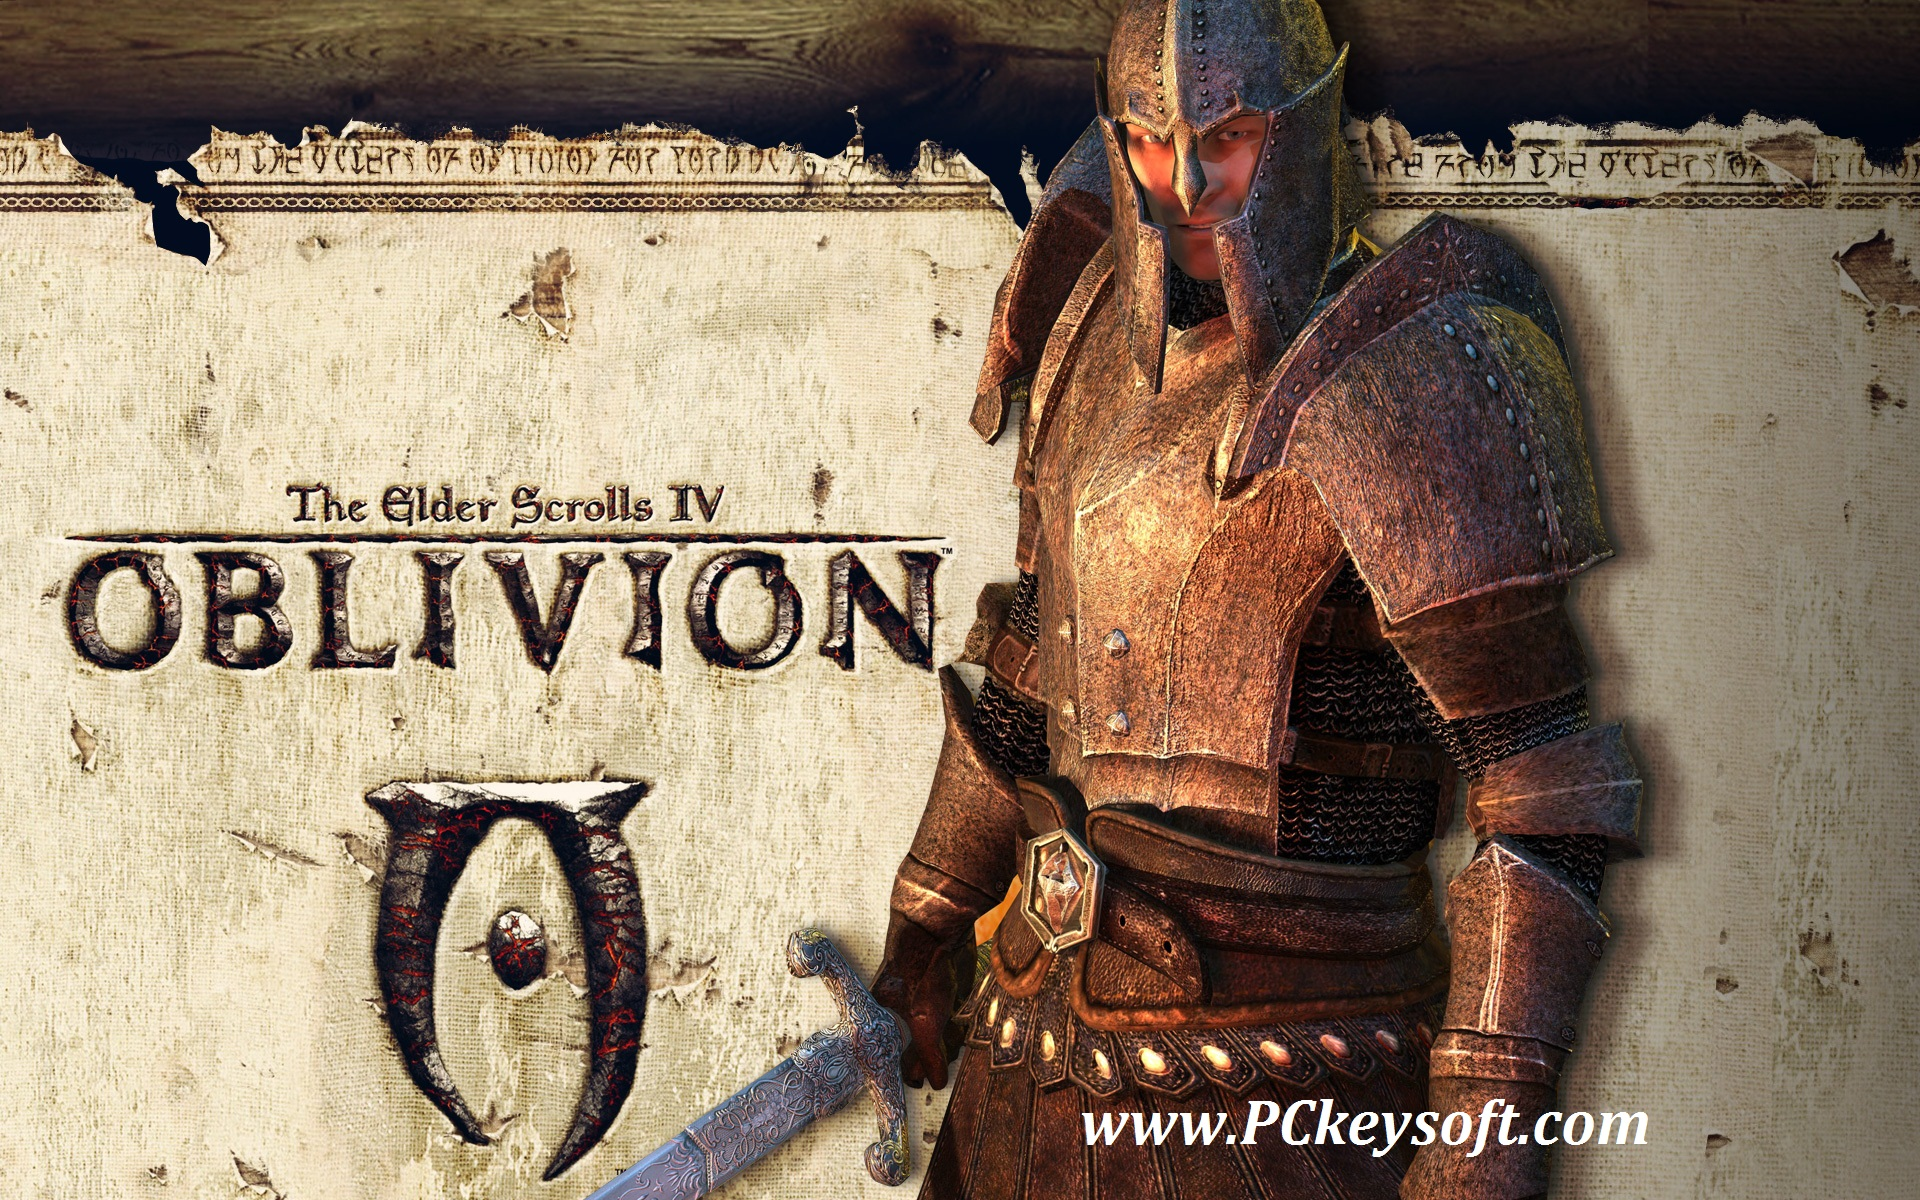 How to get the elder scrolls iv: oblivion for free on pc 2017.